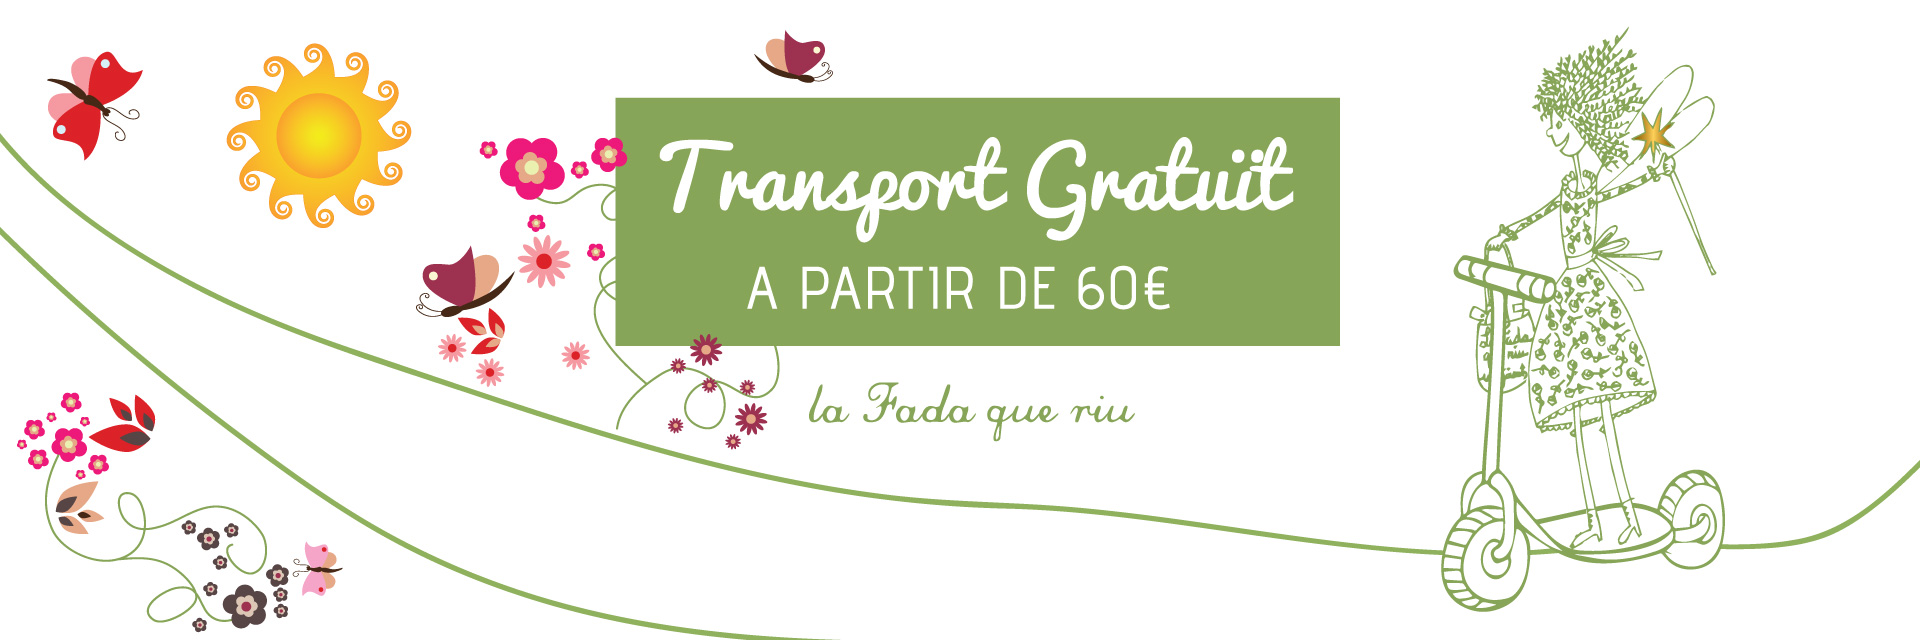 3117336slider-transport-gratuit